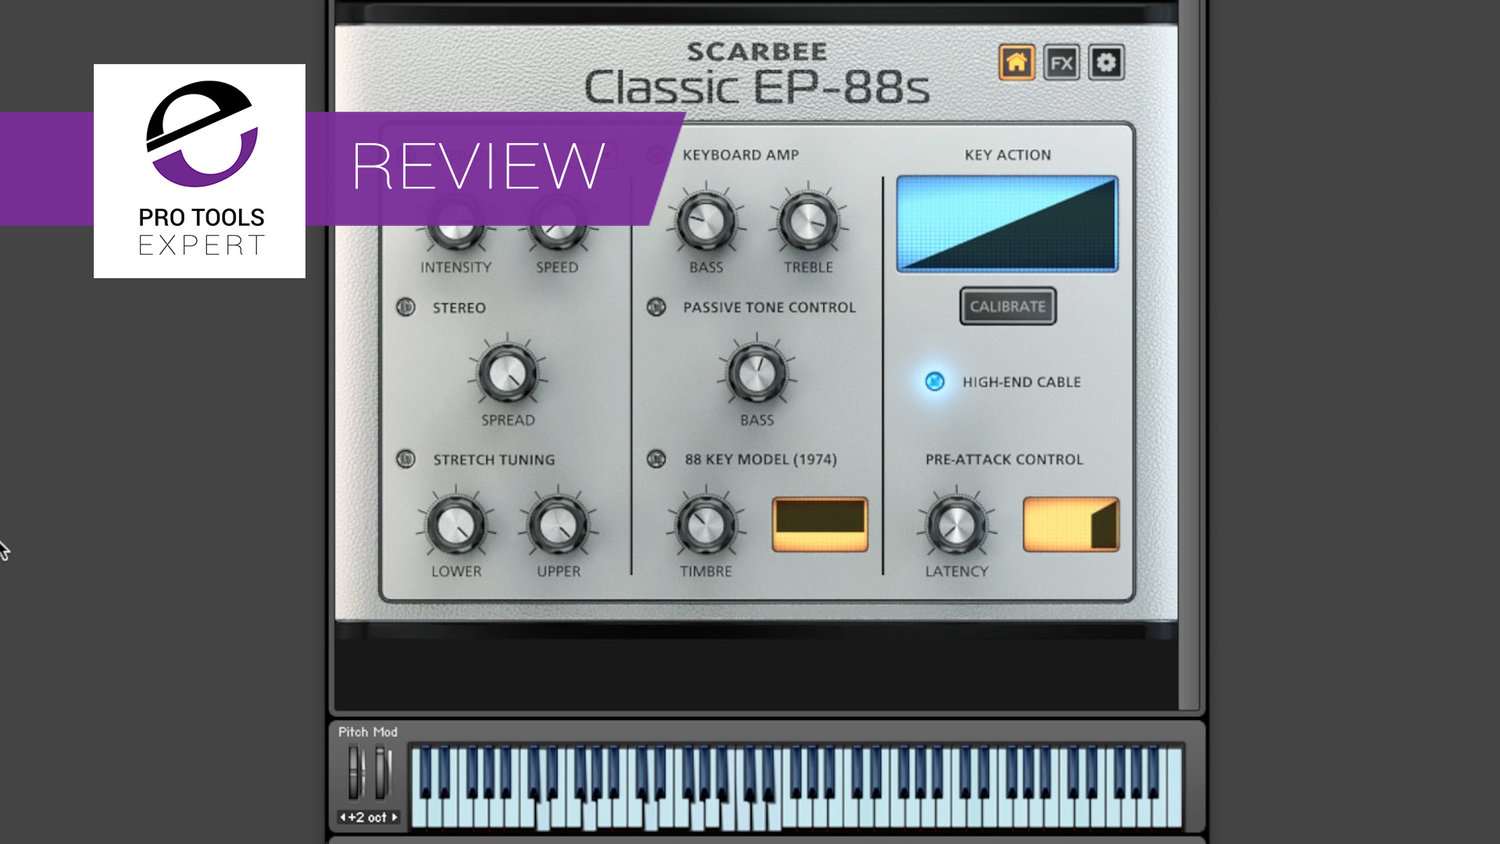 Review - Scarbee Classic EP-88s | Reviews